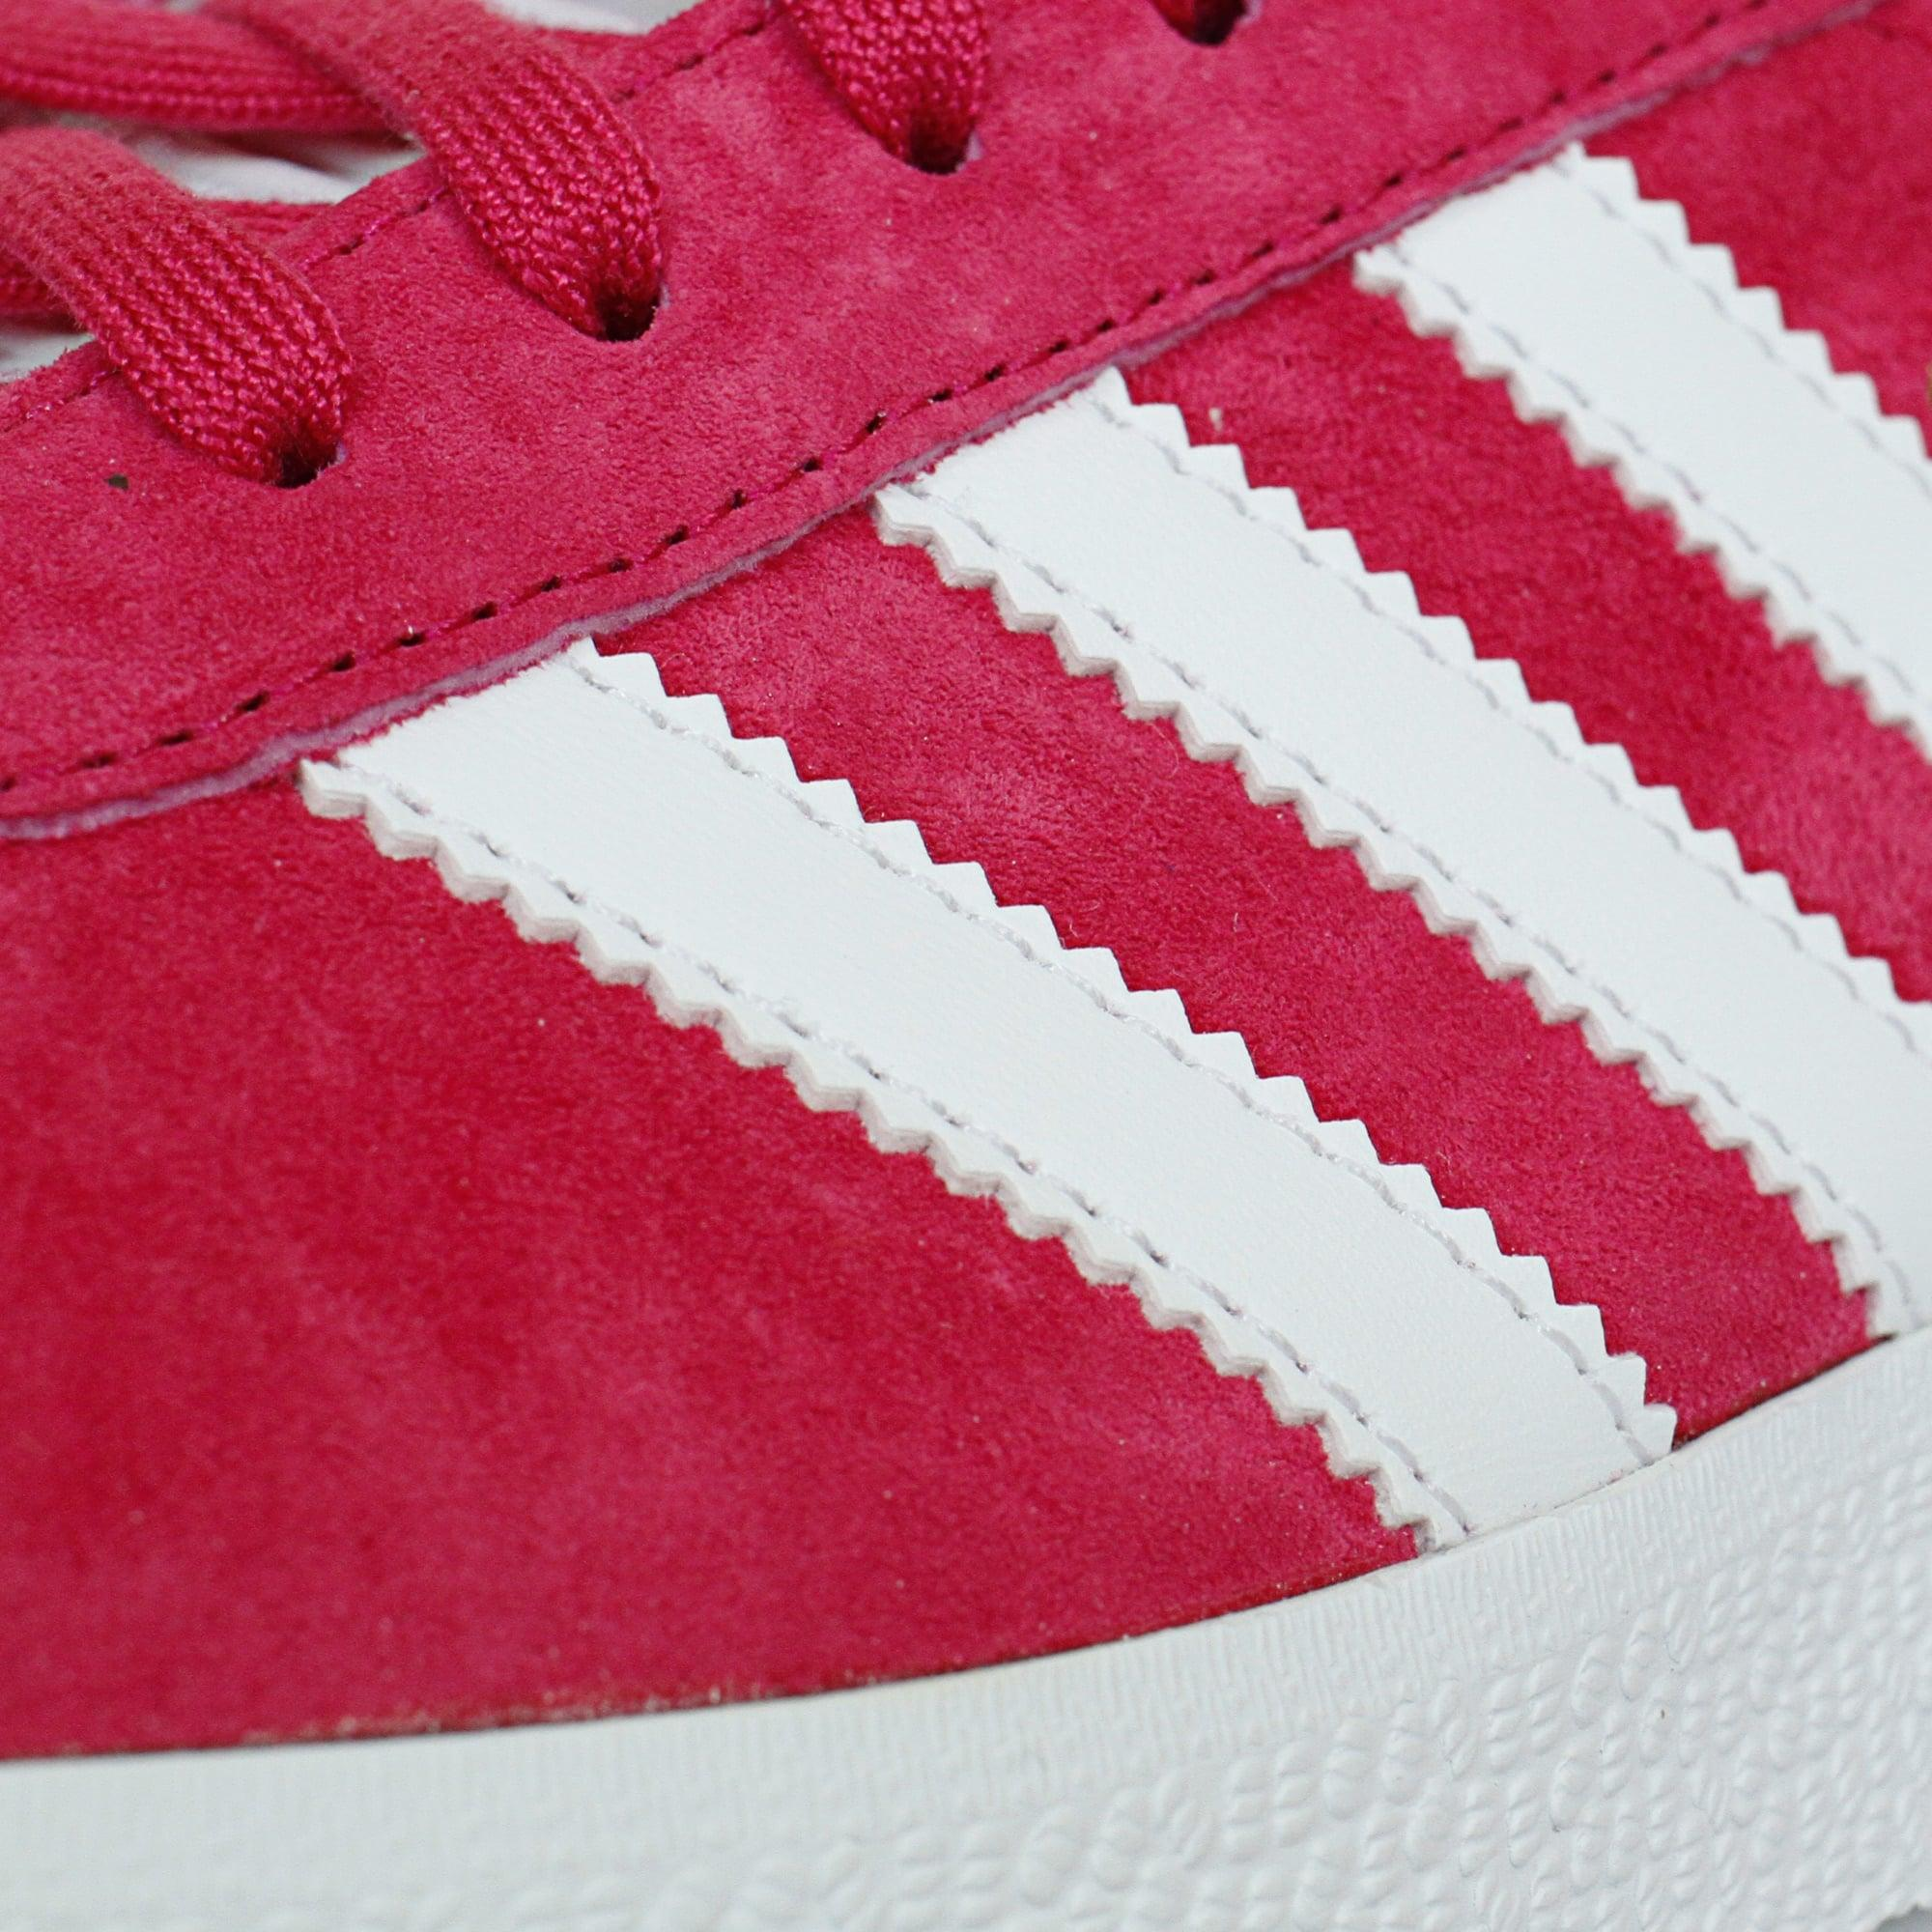 adidas Originals Leather Gazelle Pink White Shoe Bb5483 for Men